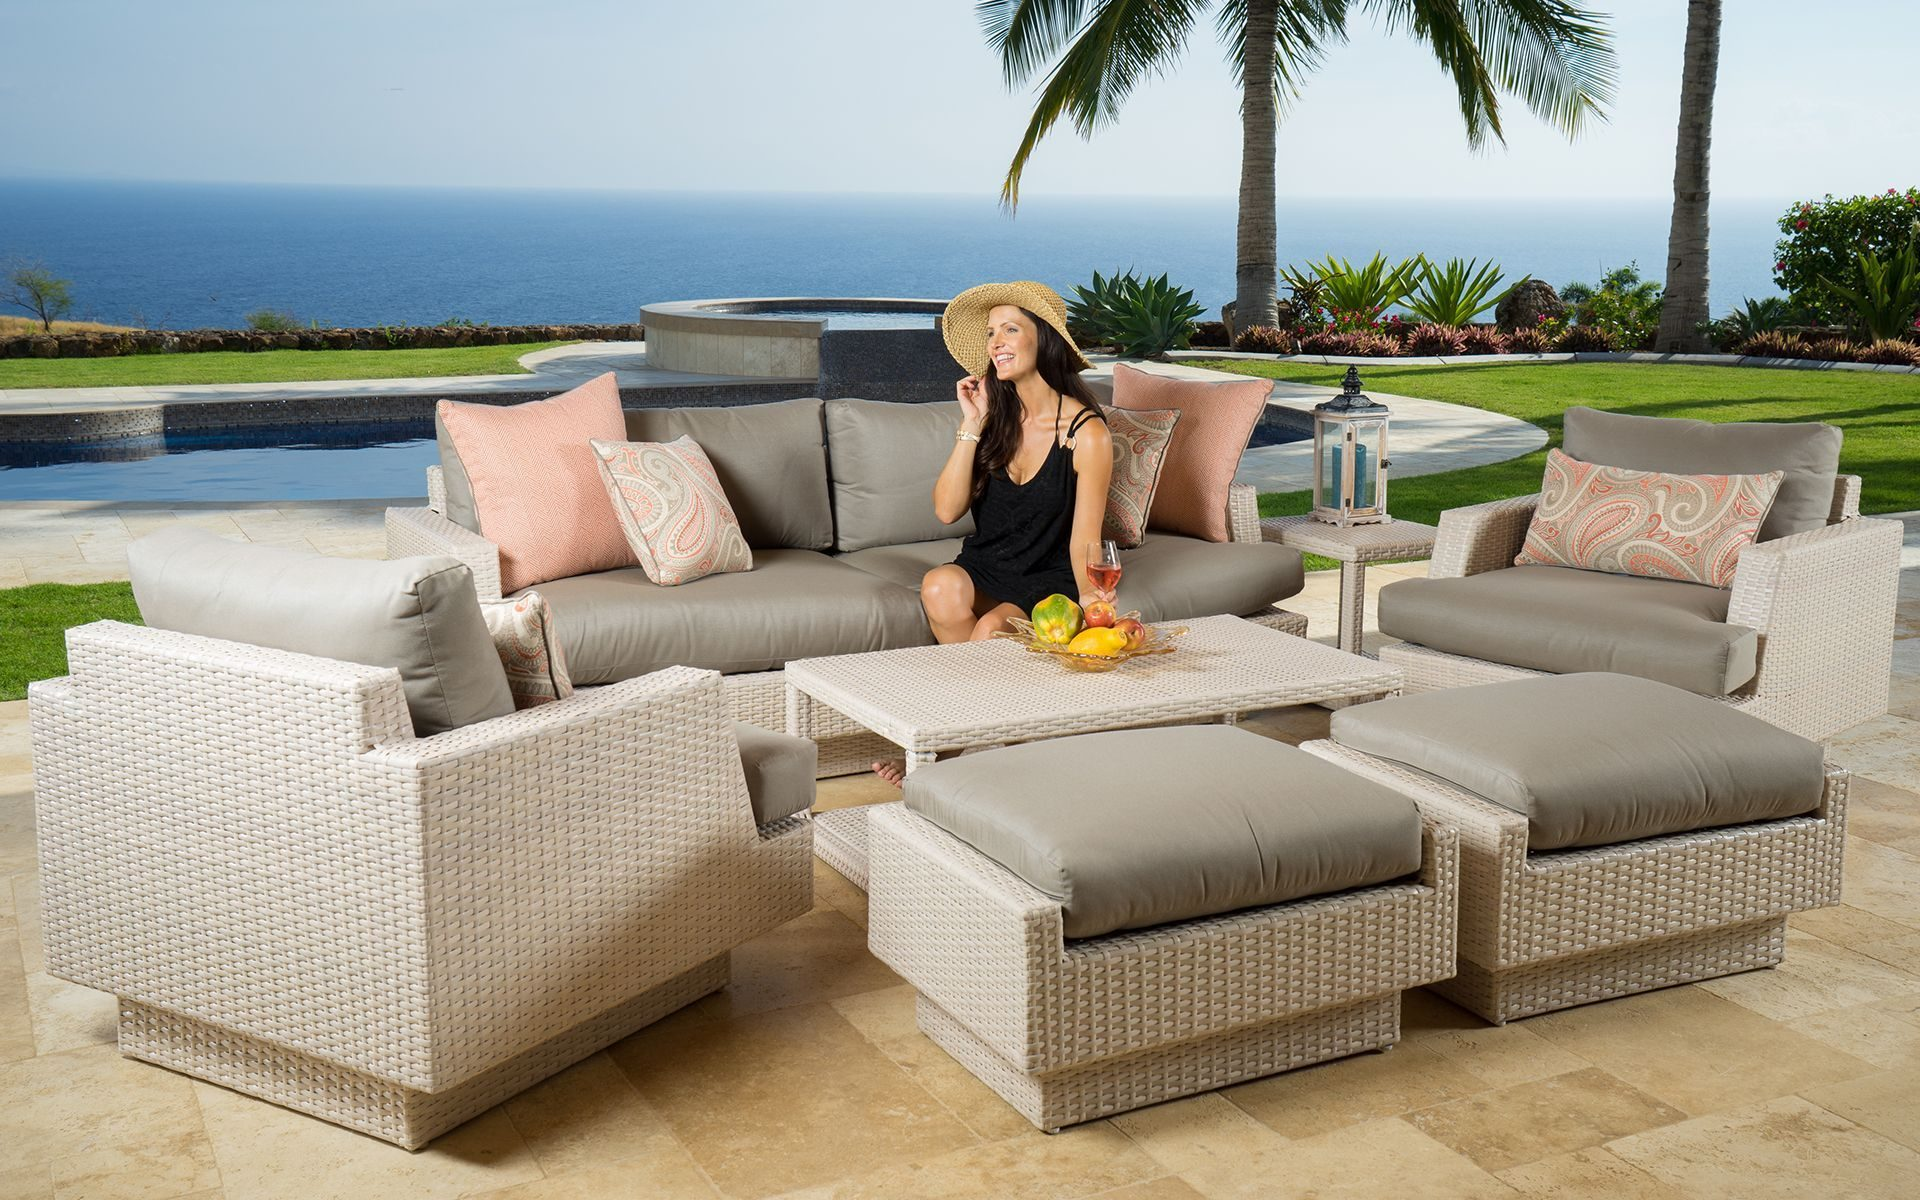 Fancy Patio Furniture Near Me In Small Home Remodel Ideas With Used for patio furniture near me